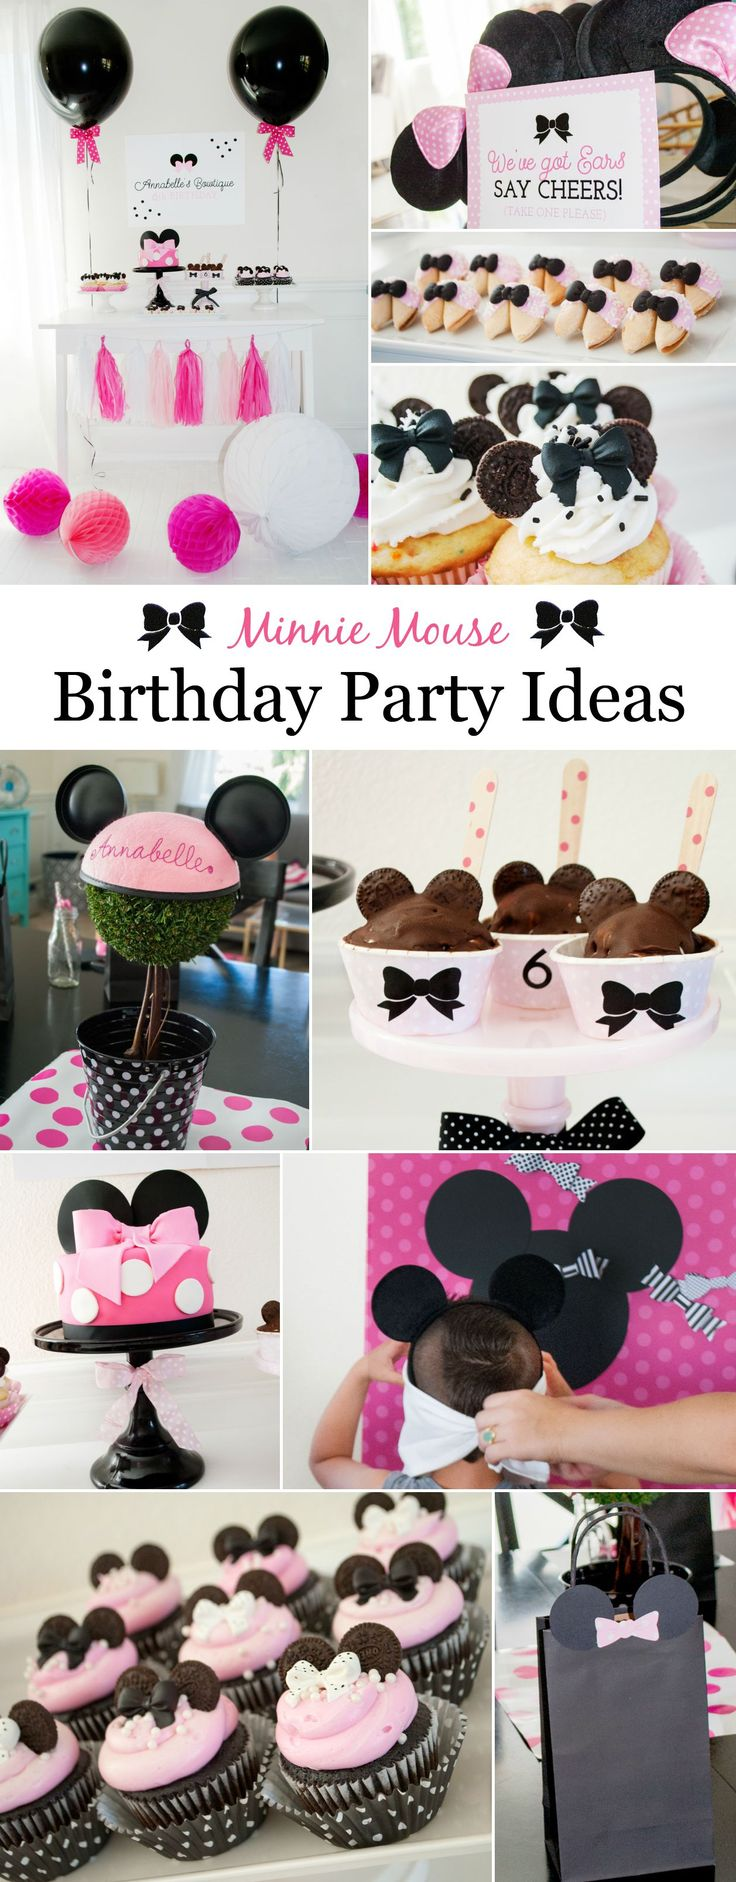 Minnie Mouse Birthday Party Ideas 754 best